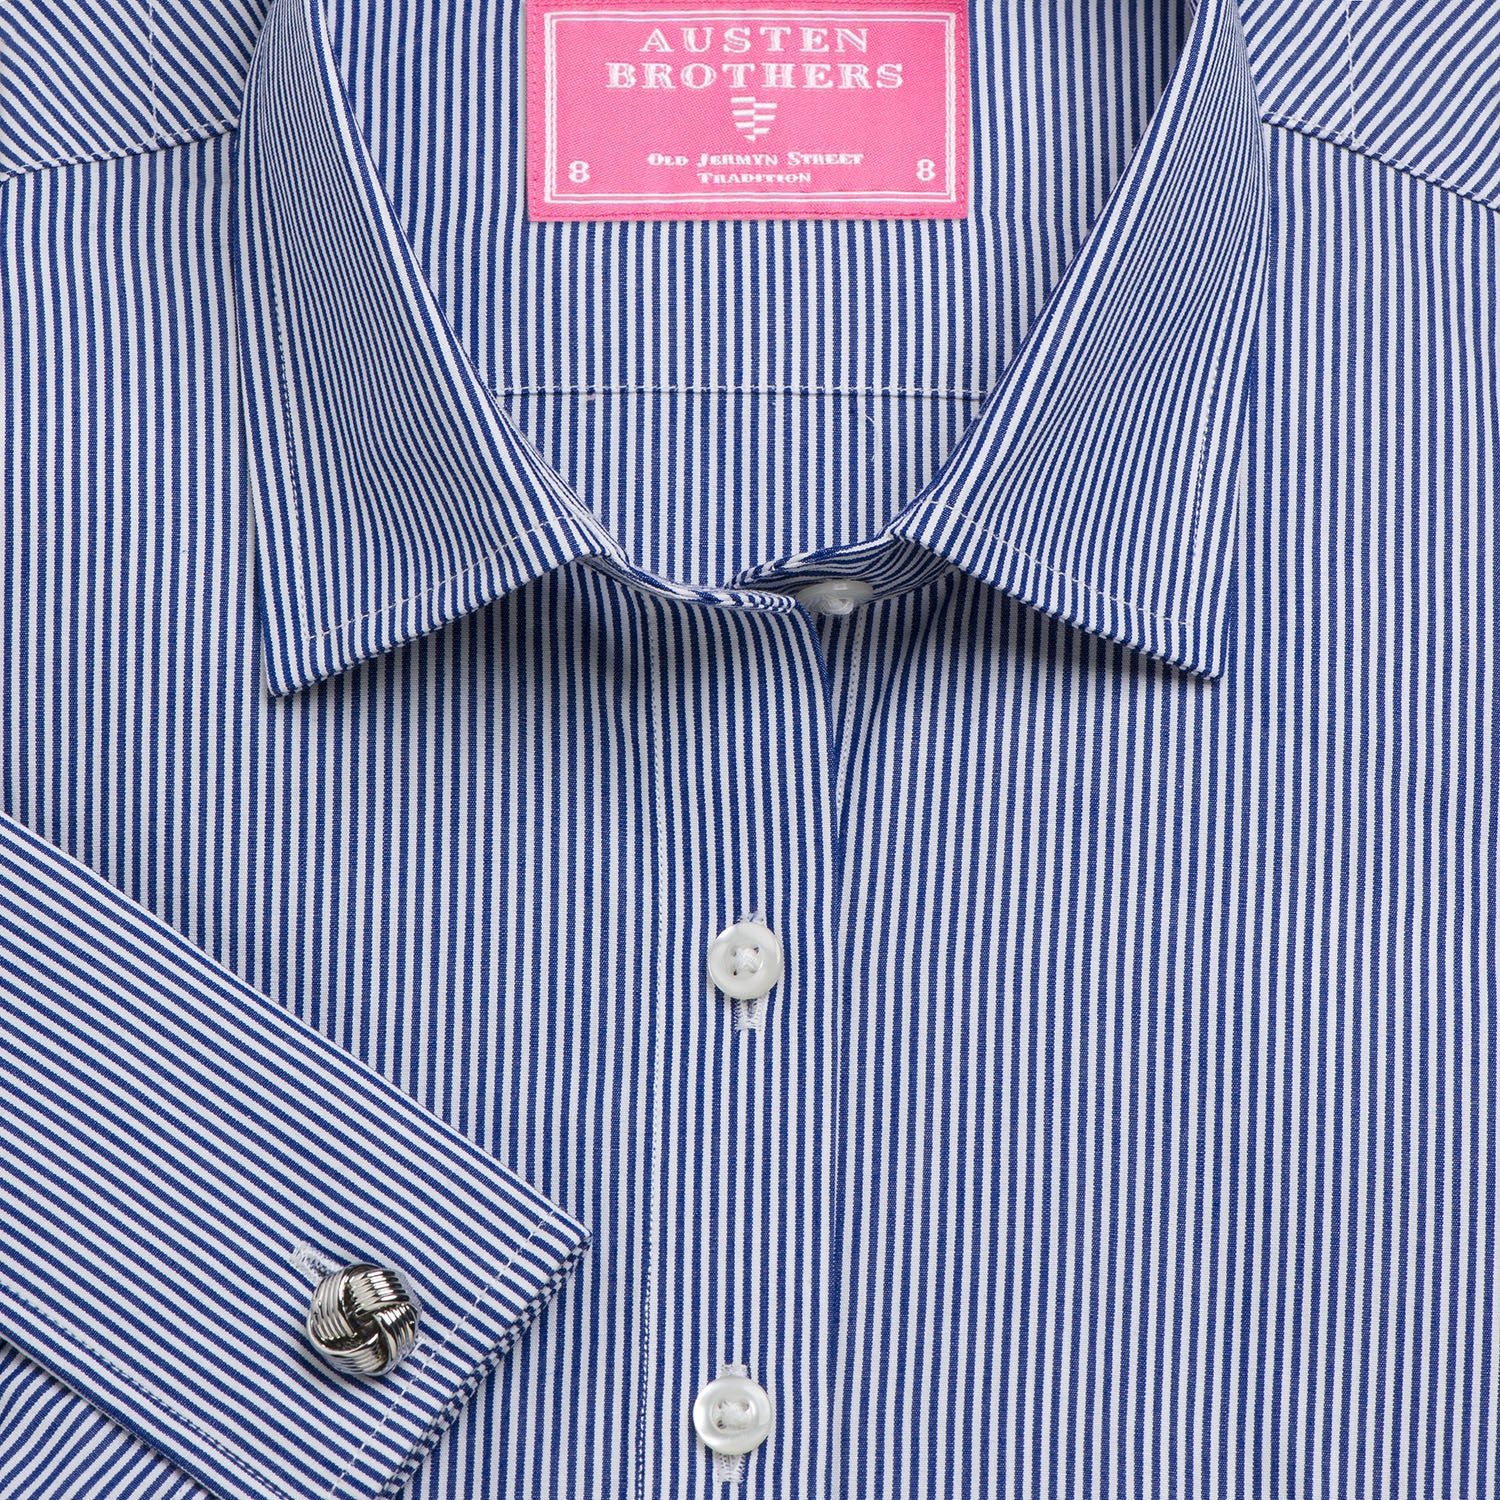 35b581a041 Made 2 Order - Navy French Bengal Stripe Poplin | Austen Brothers